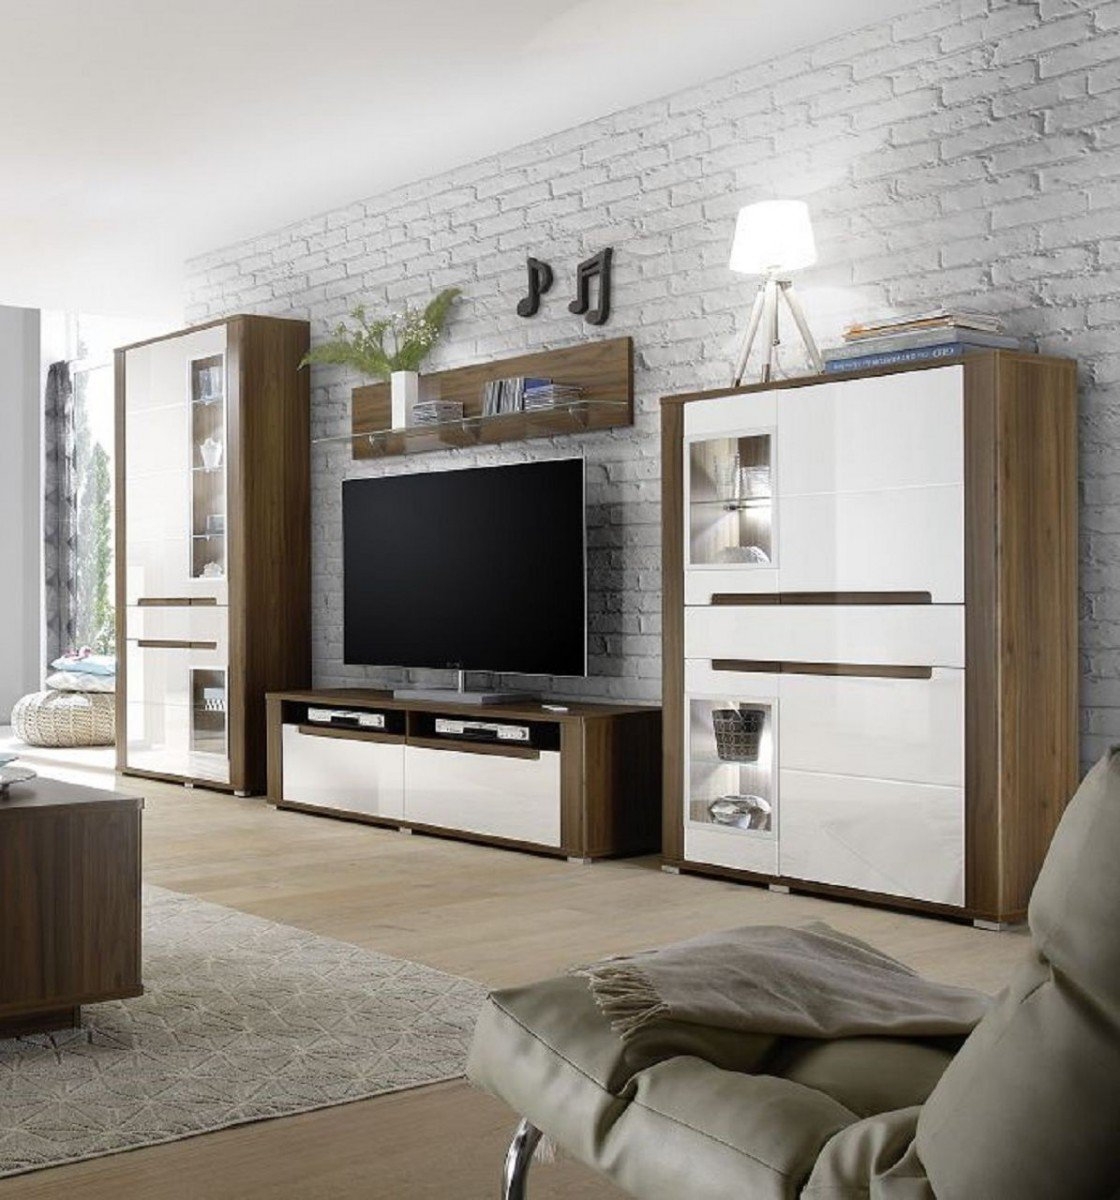 dreams4home wohnzimmer set 39 polli 39 set vitrine highboard tv schrank wandboard phono m bel. Black Bedroom Furniture Sets. Home Design Ideas